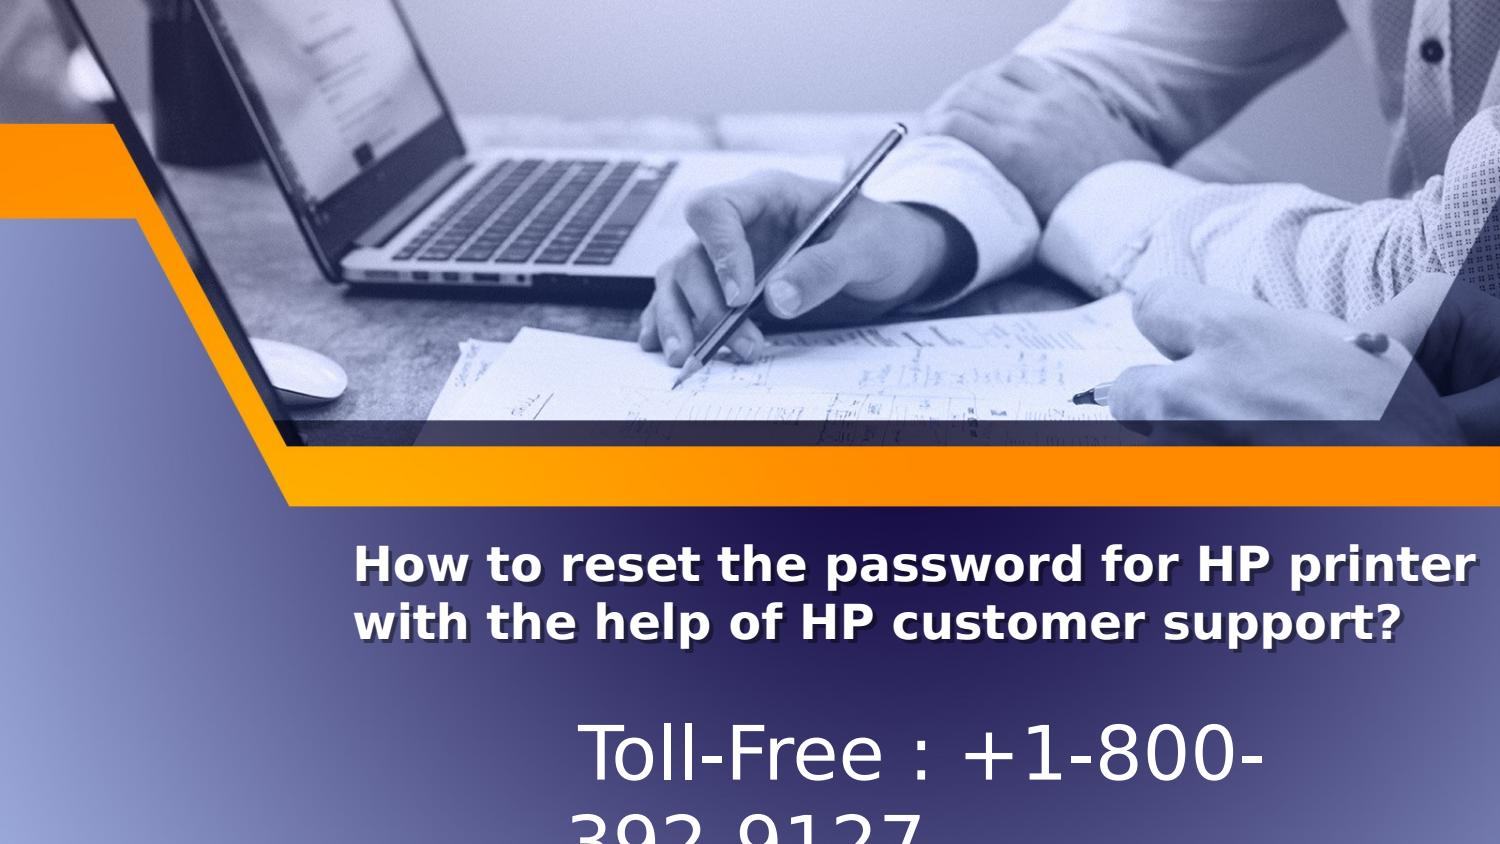 How to reset the password for hp printer with the help of hp